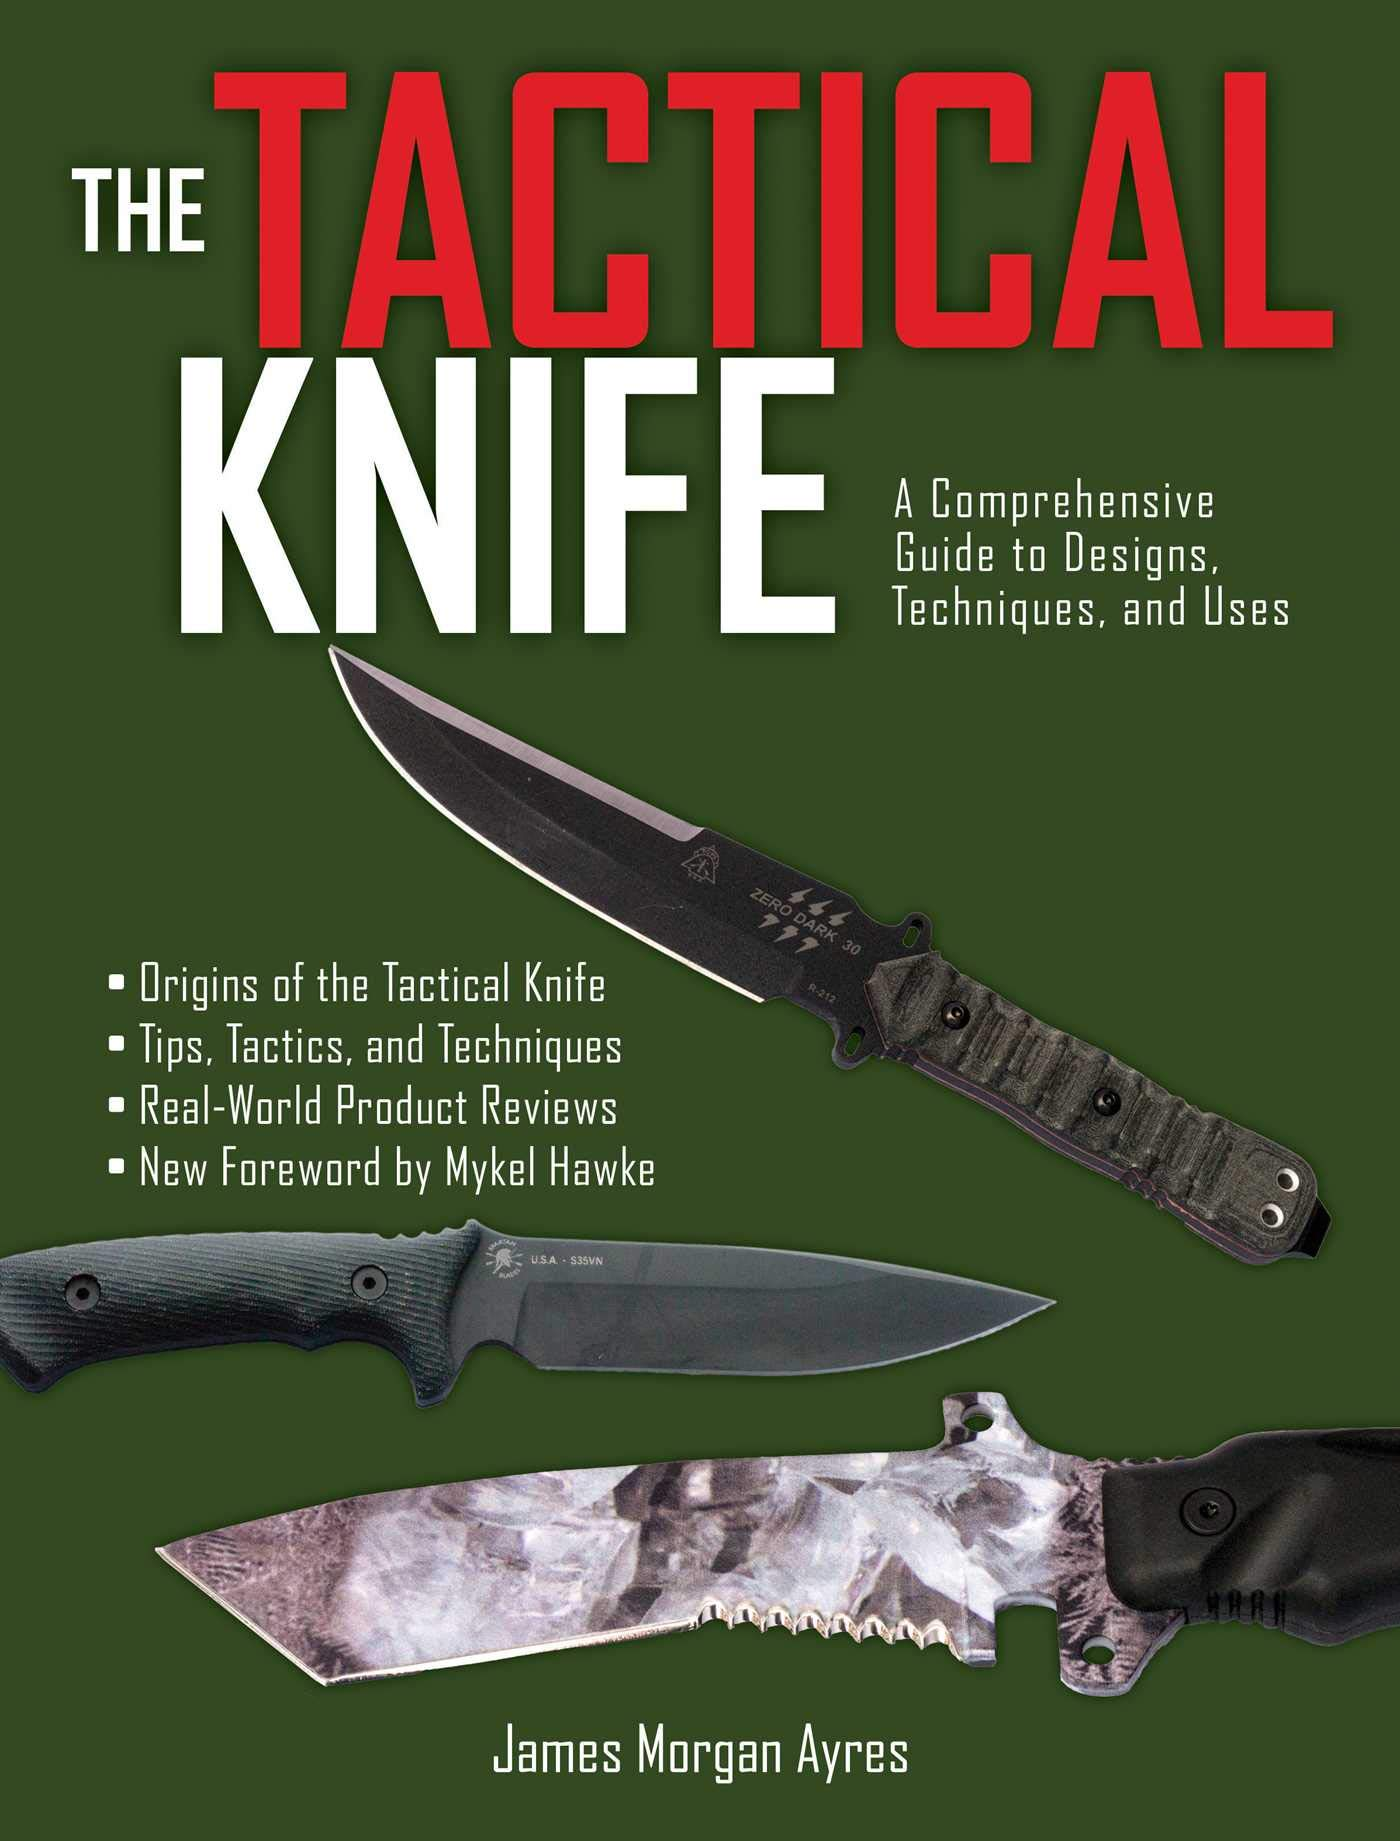 The Tactical Knife: A Comprehensive Guide to Designs, Techniques, and Uses por James Morgan Ayres